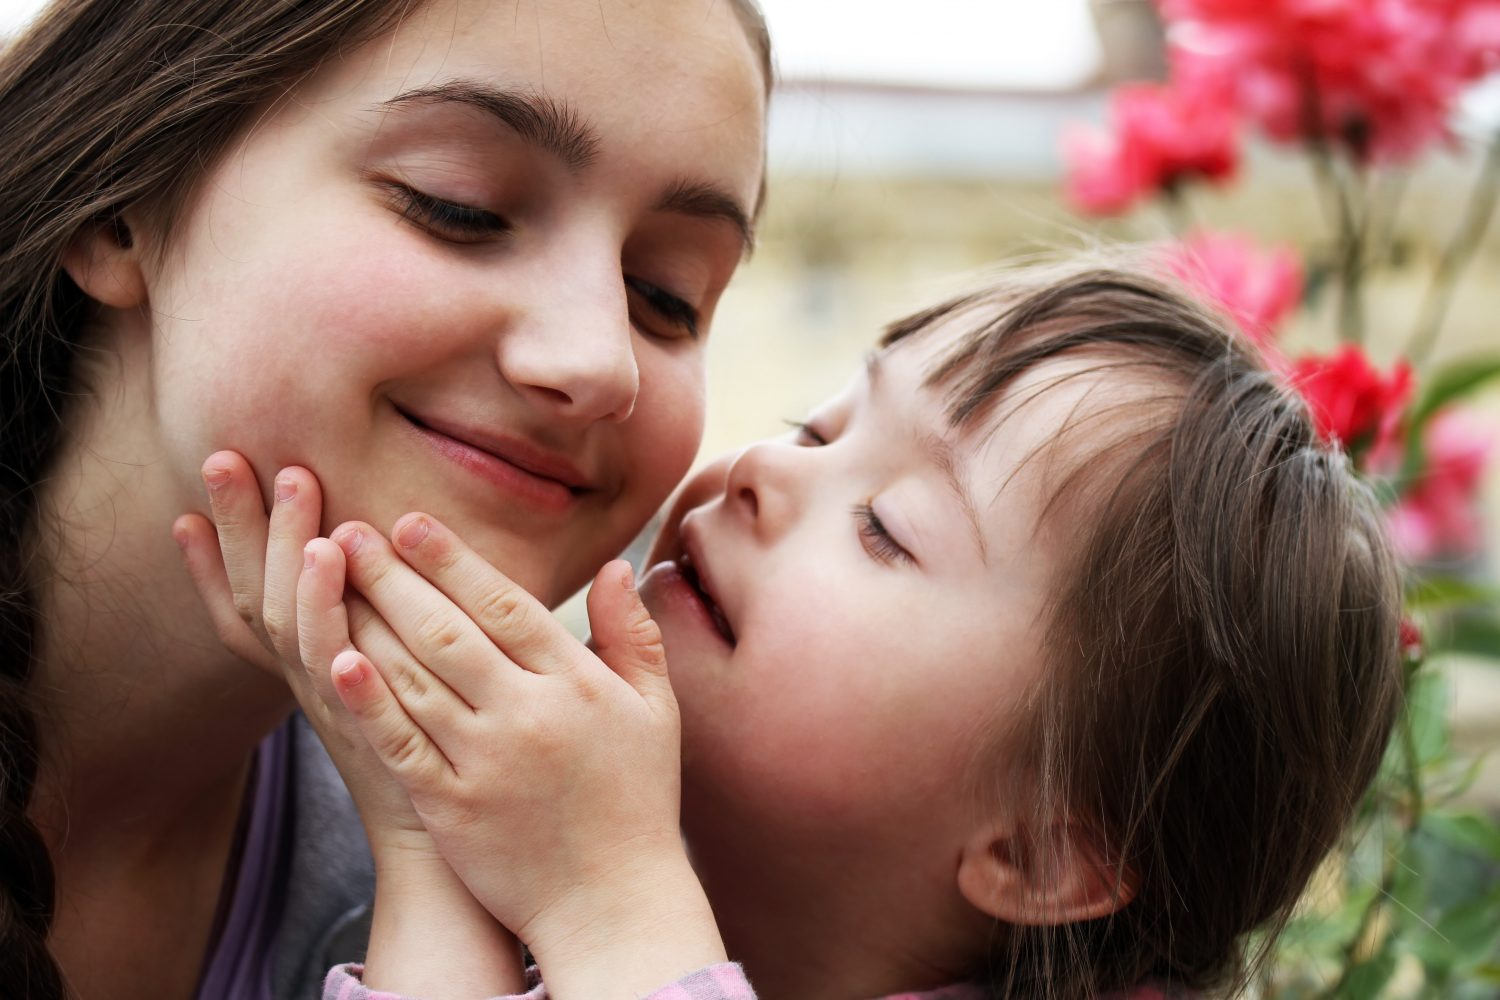 : Image of a smiling young girl with Down syndrome touching the face of another girl